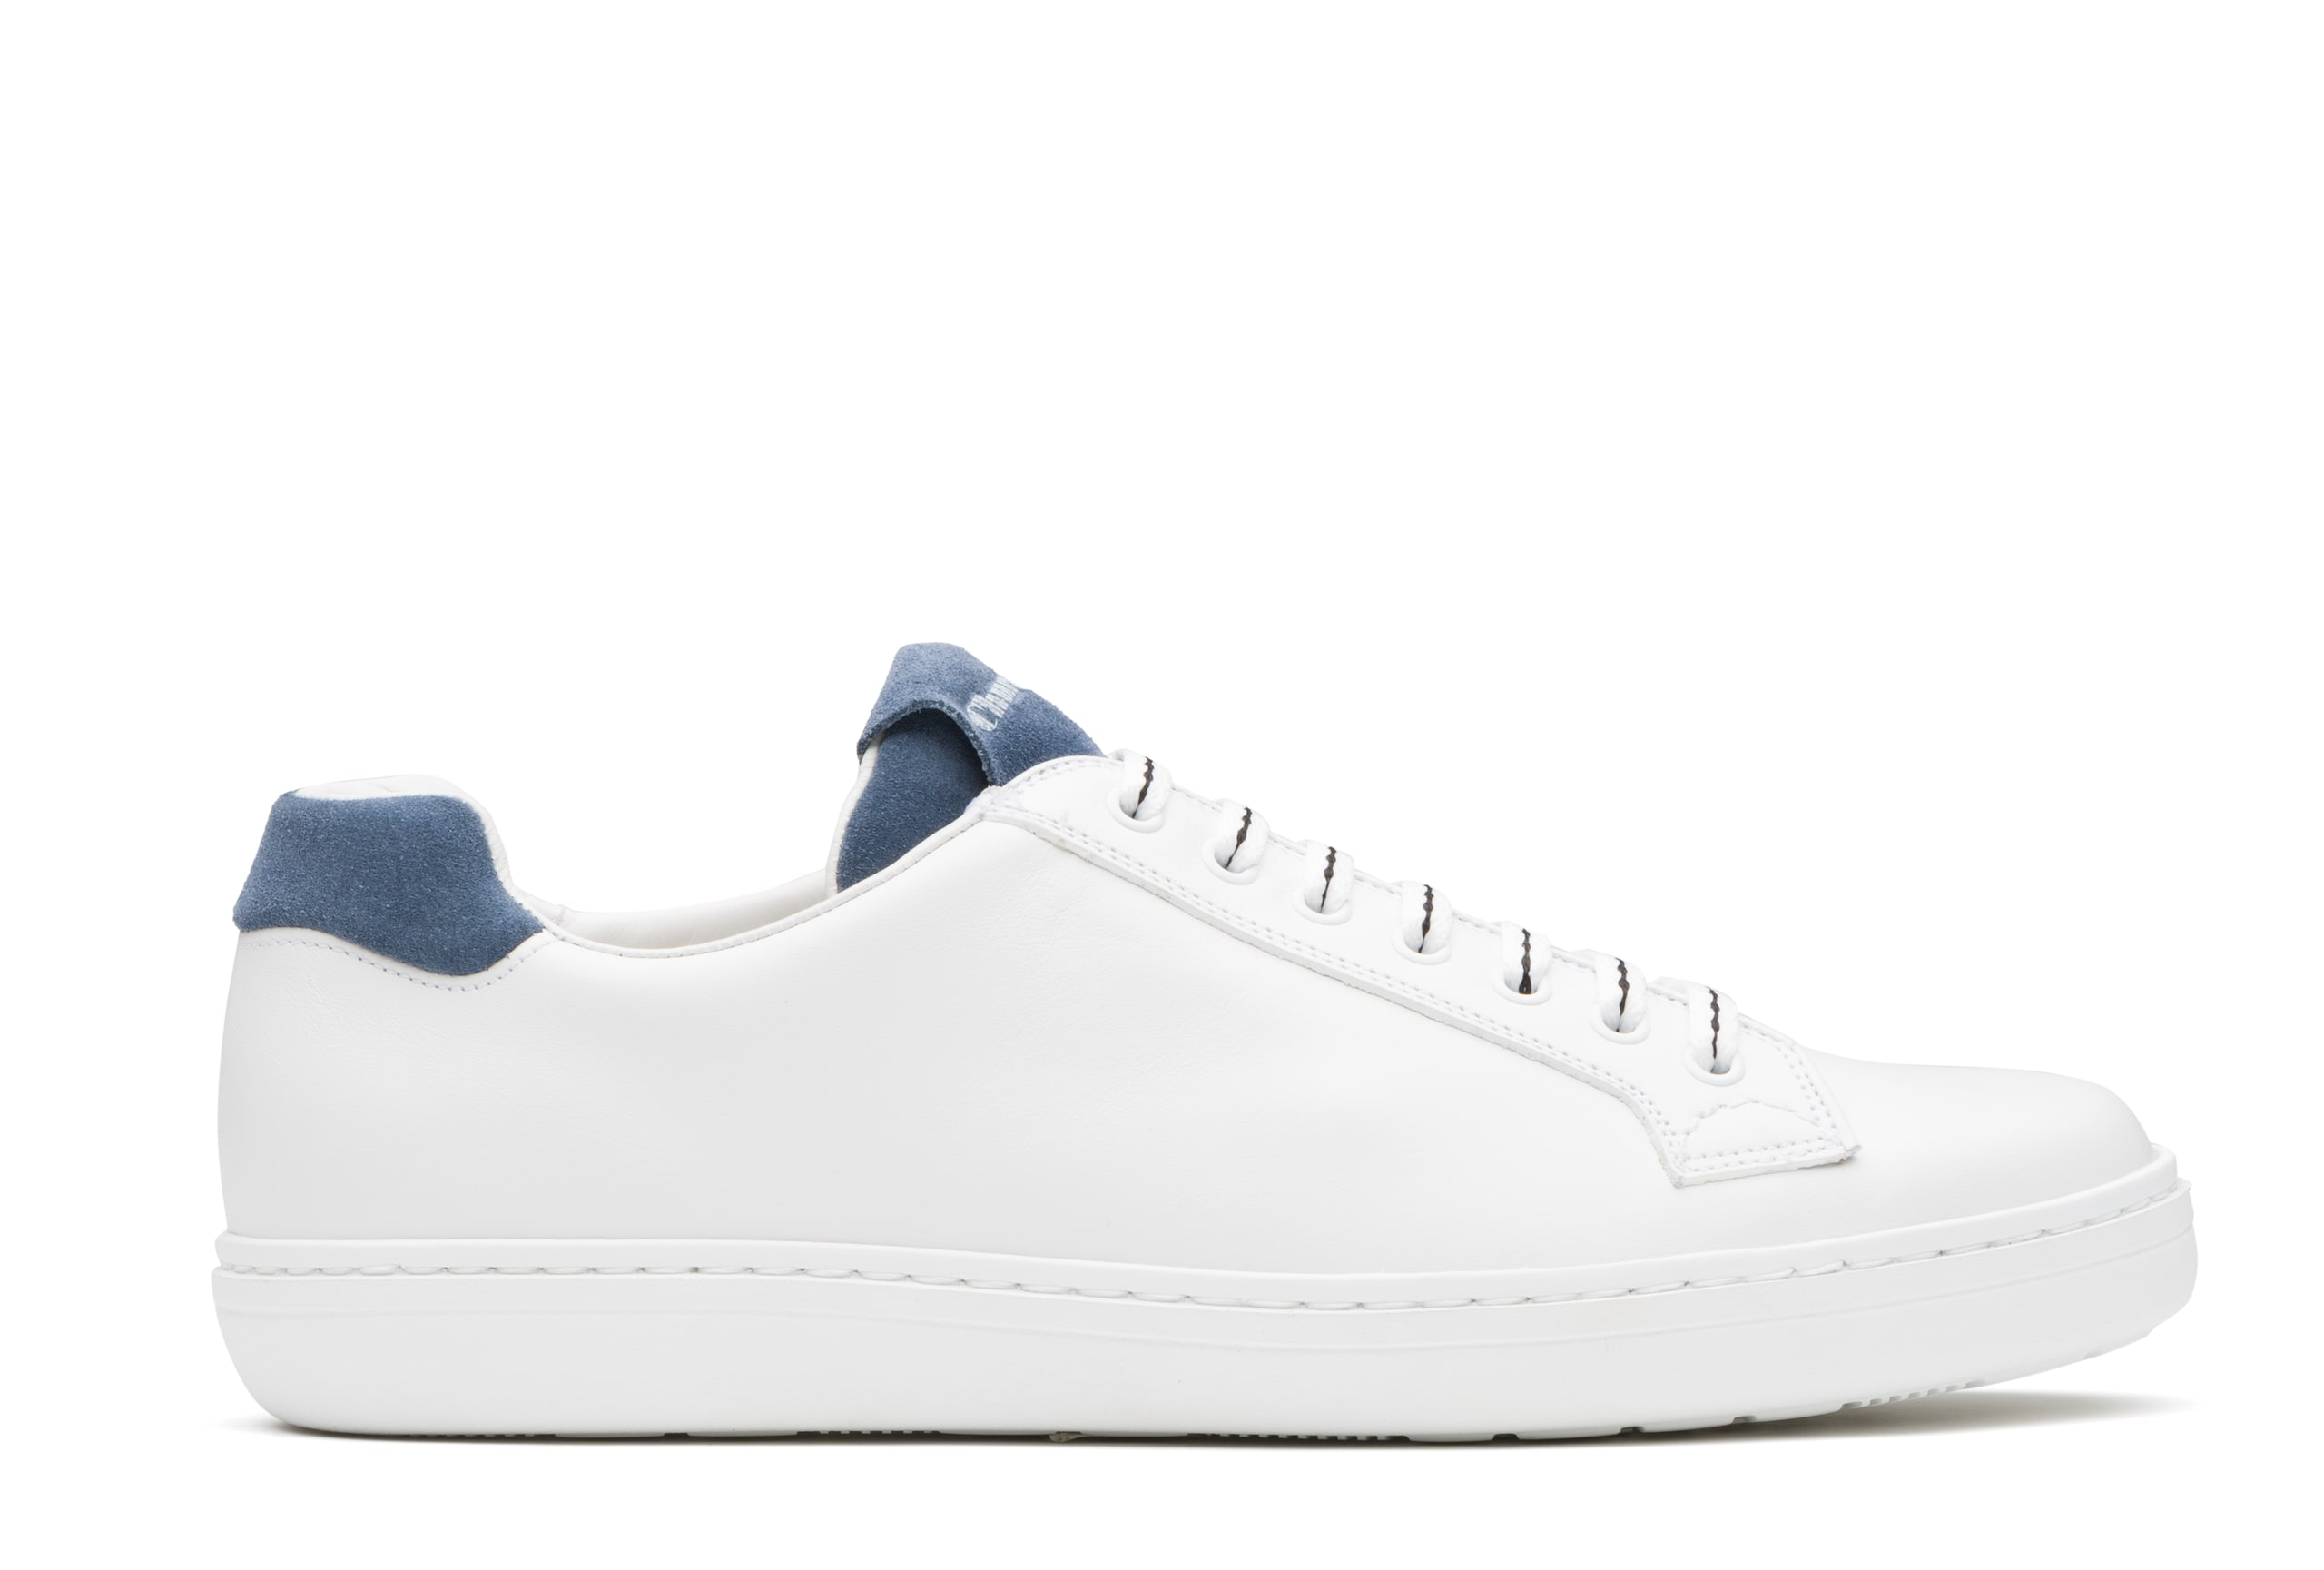 Boland plus Church's Calf and Leather Suede Classic Sneaker White